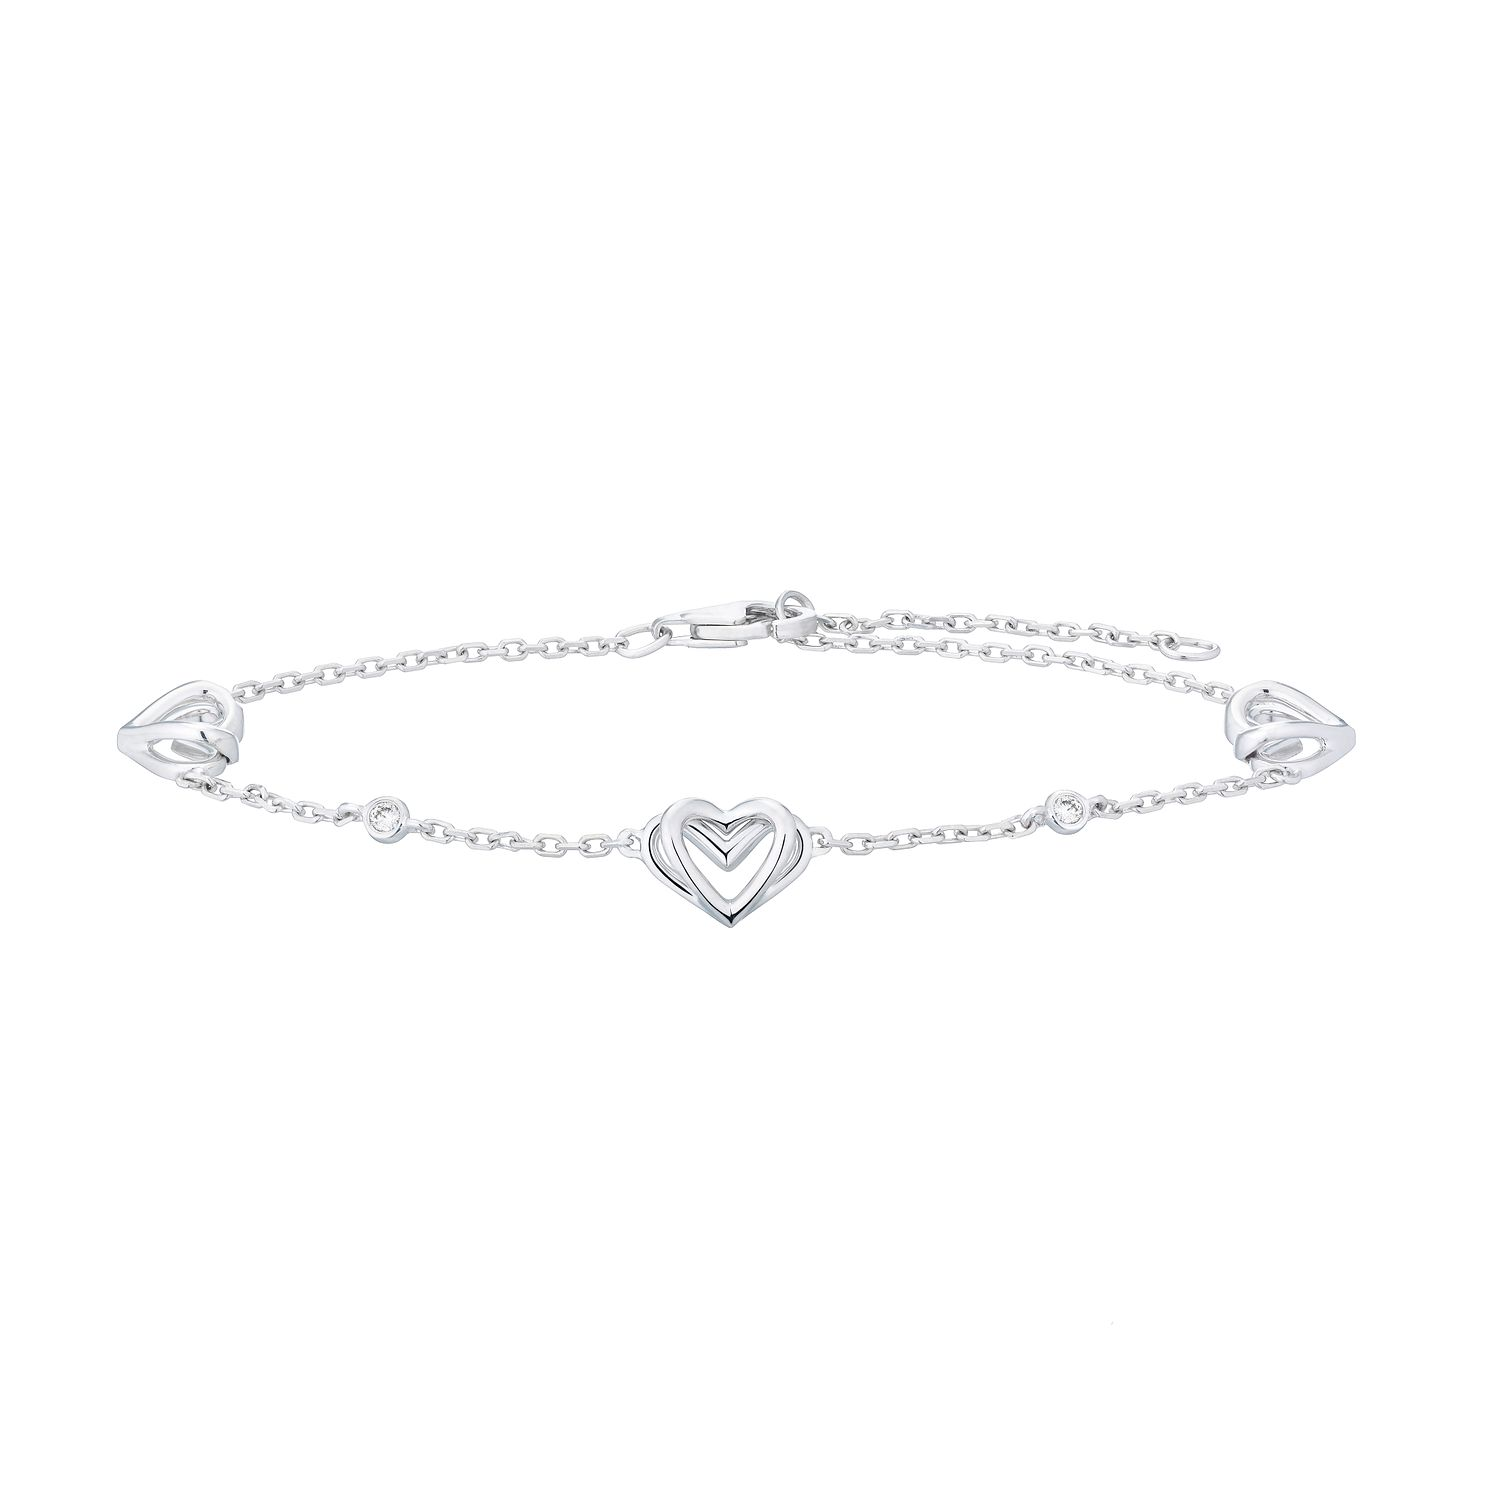 Vera Wang Sterling Silver Diamond Kindred Heart Bracelet - Product number 4504119